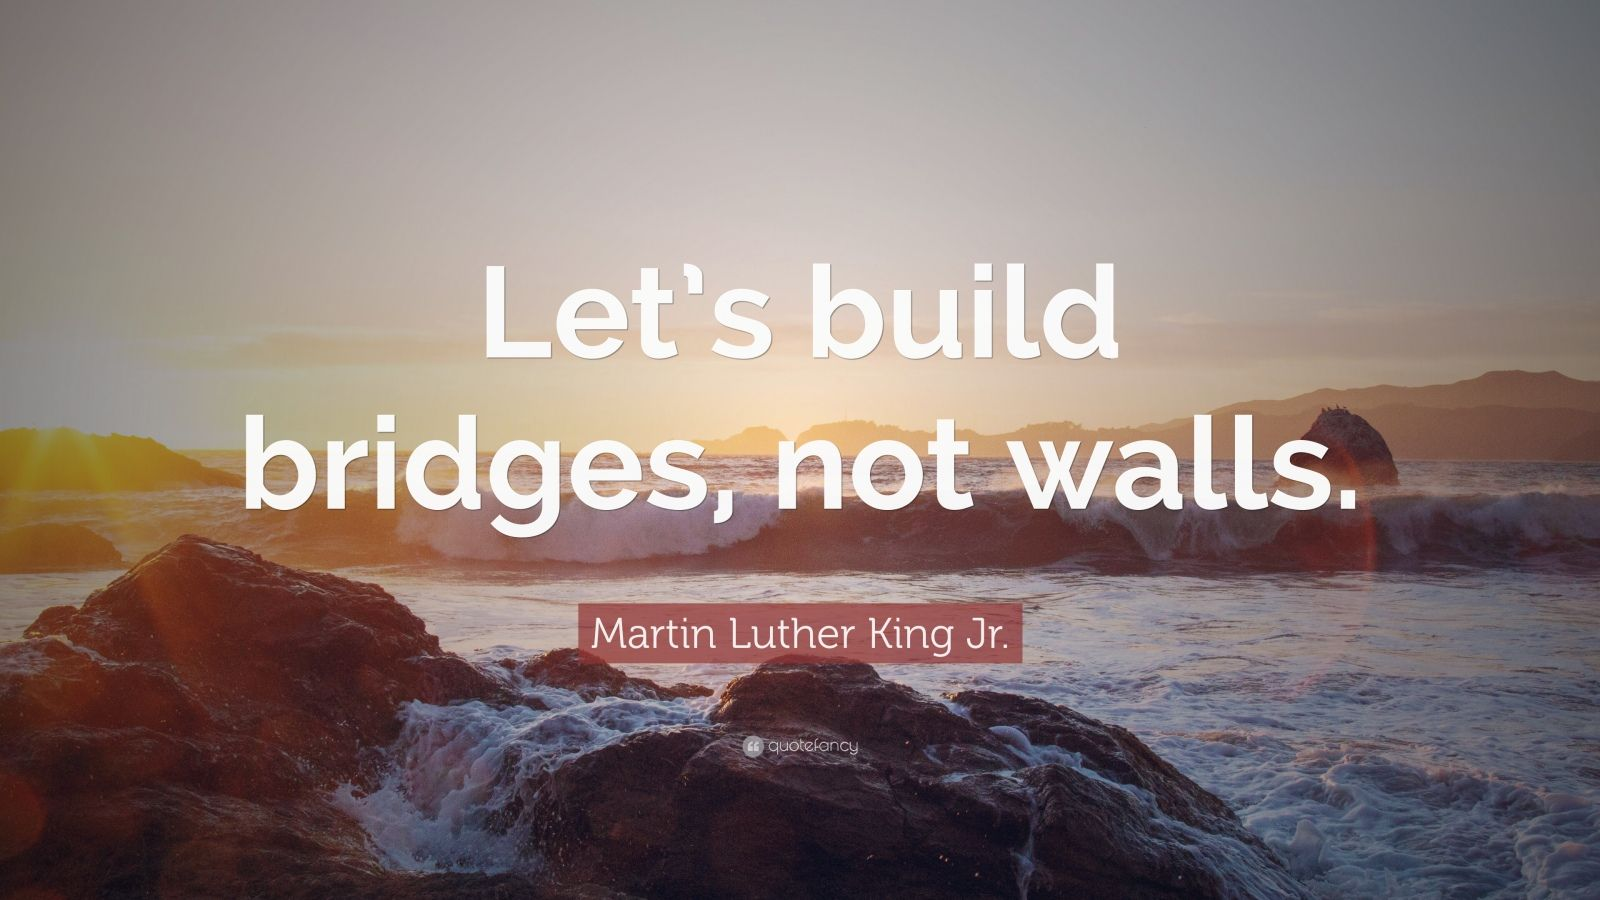 Motivational Quotes On Attitude Wallpapers Martin Luther King Jr Quote Let S Build Bridges Not